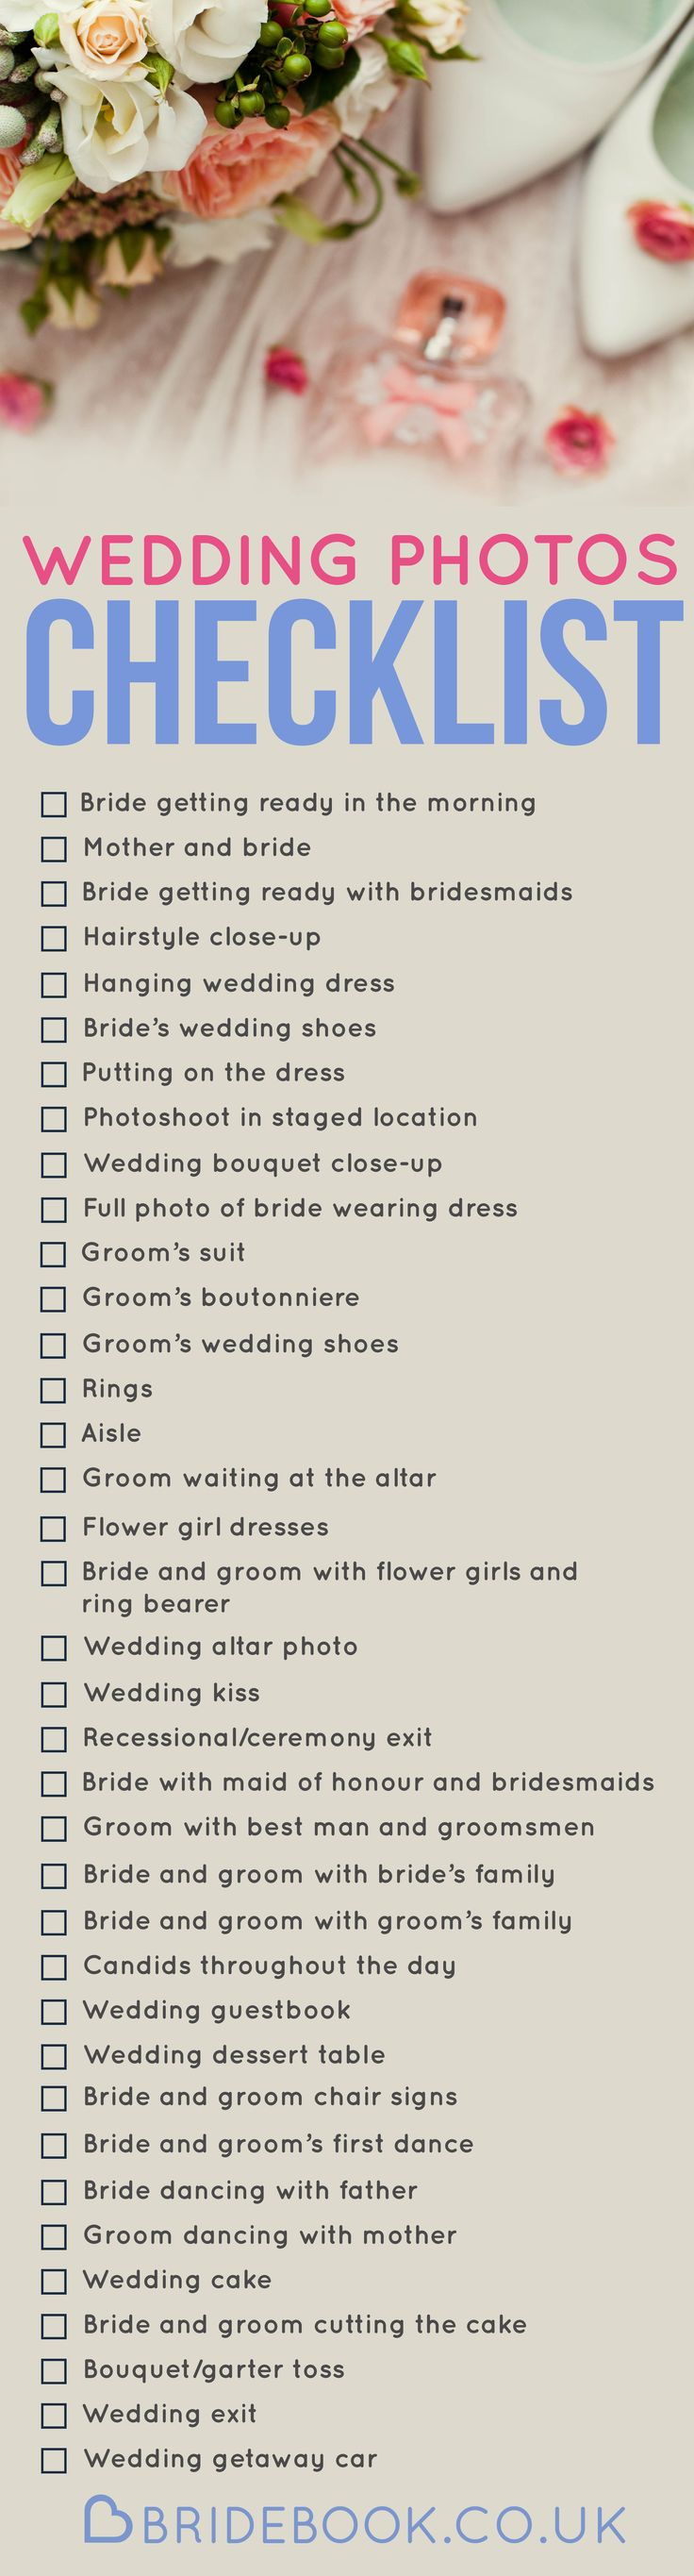 Best 25+ Wedding checklists ideas on Pinterest | Wedding checklist ...